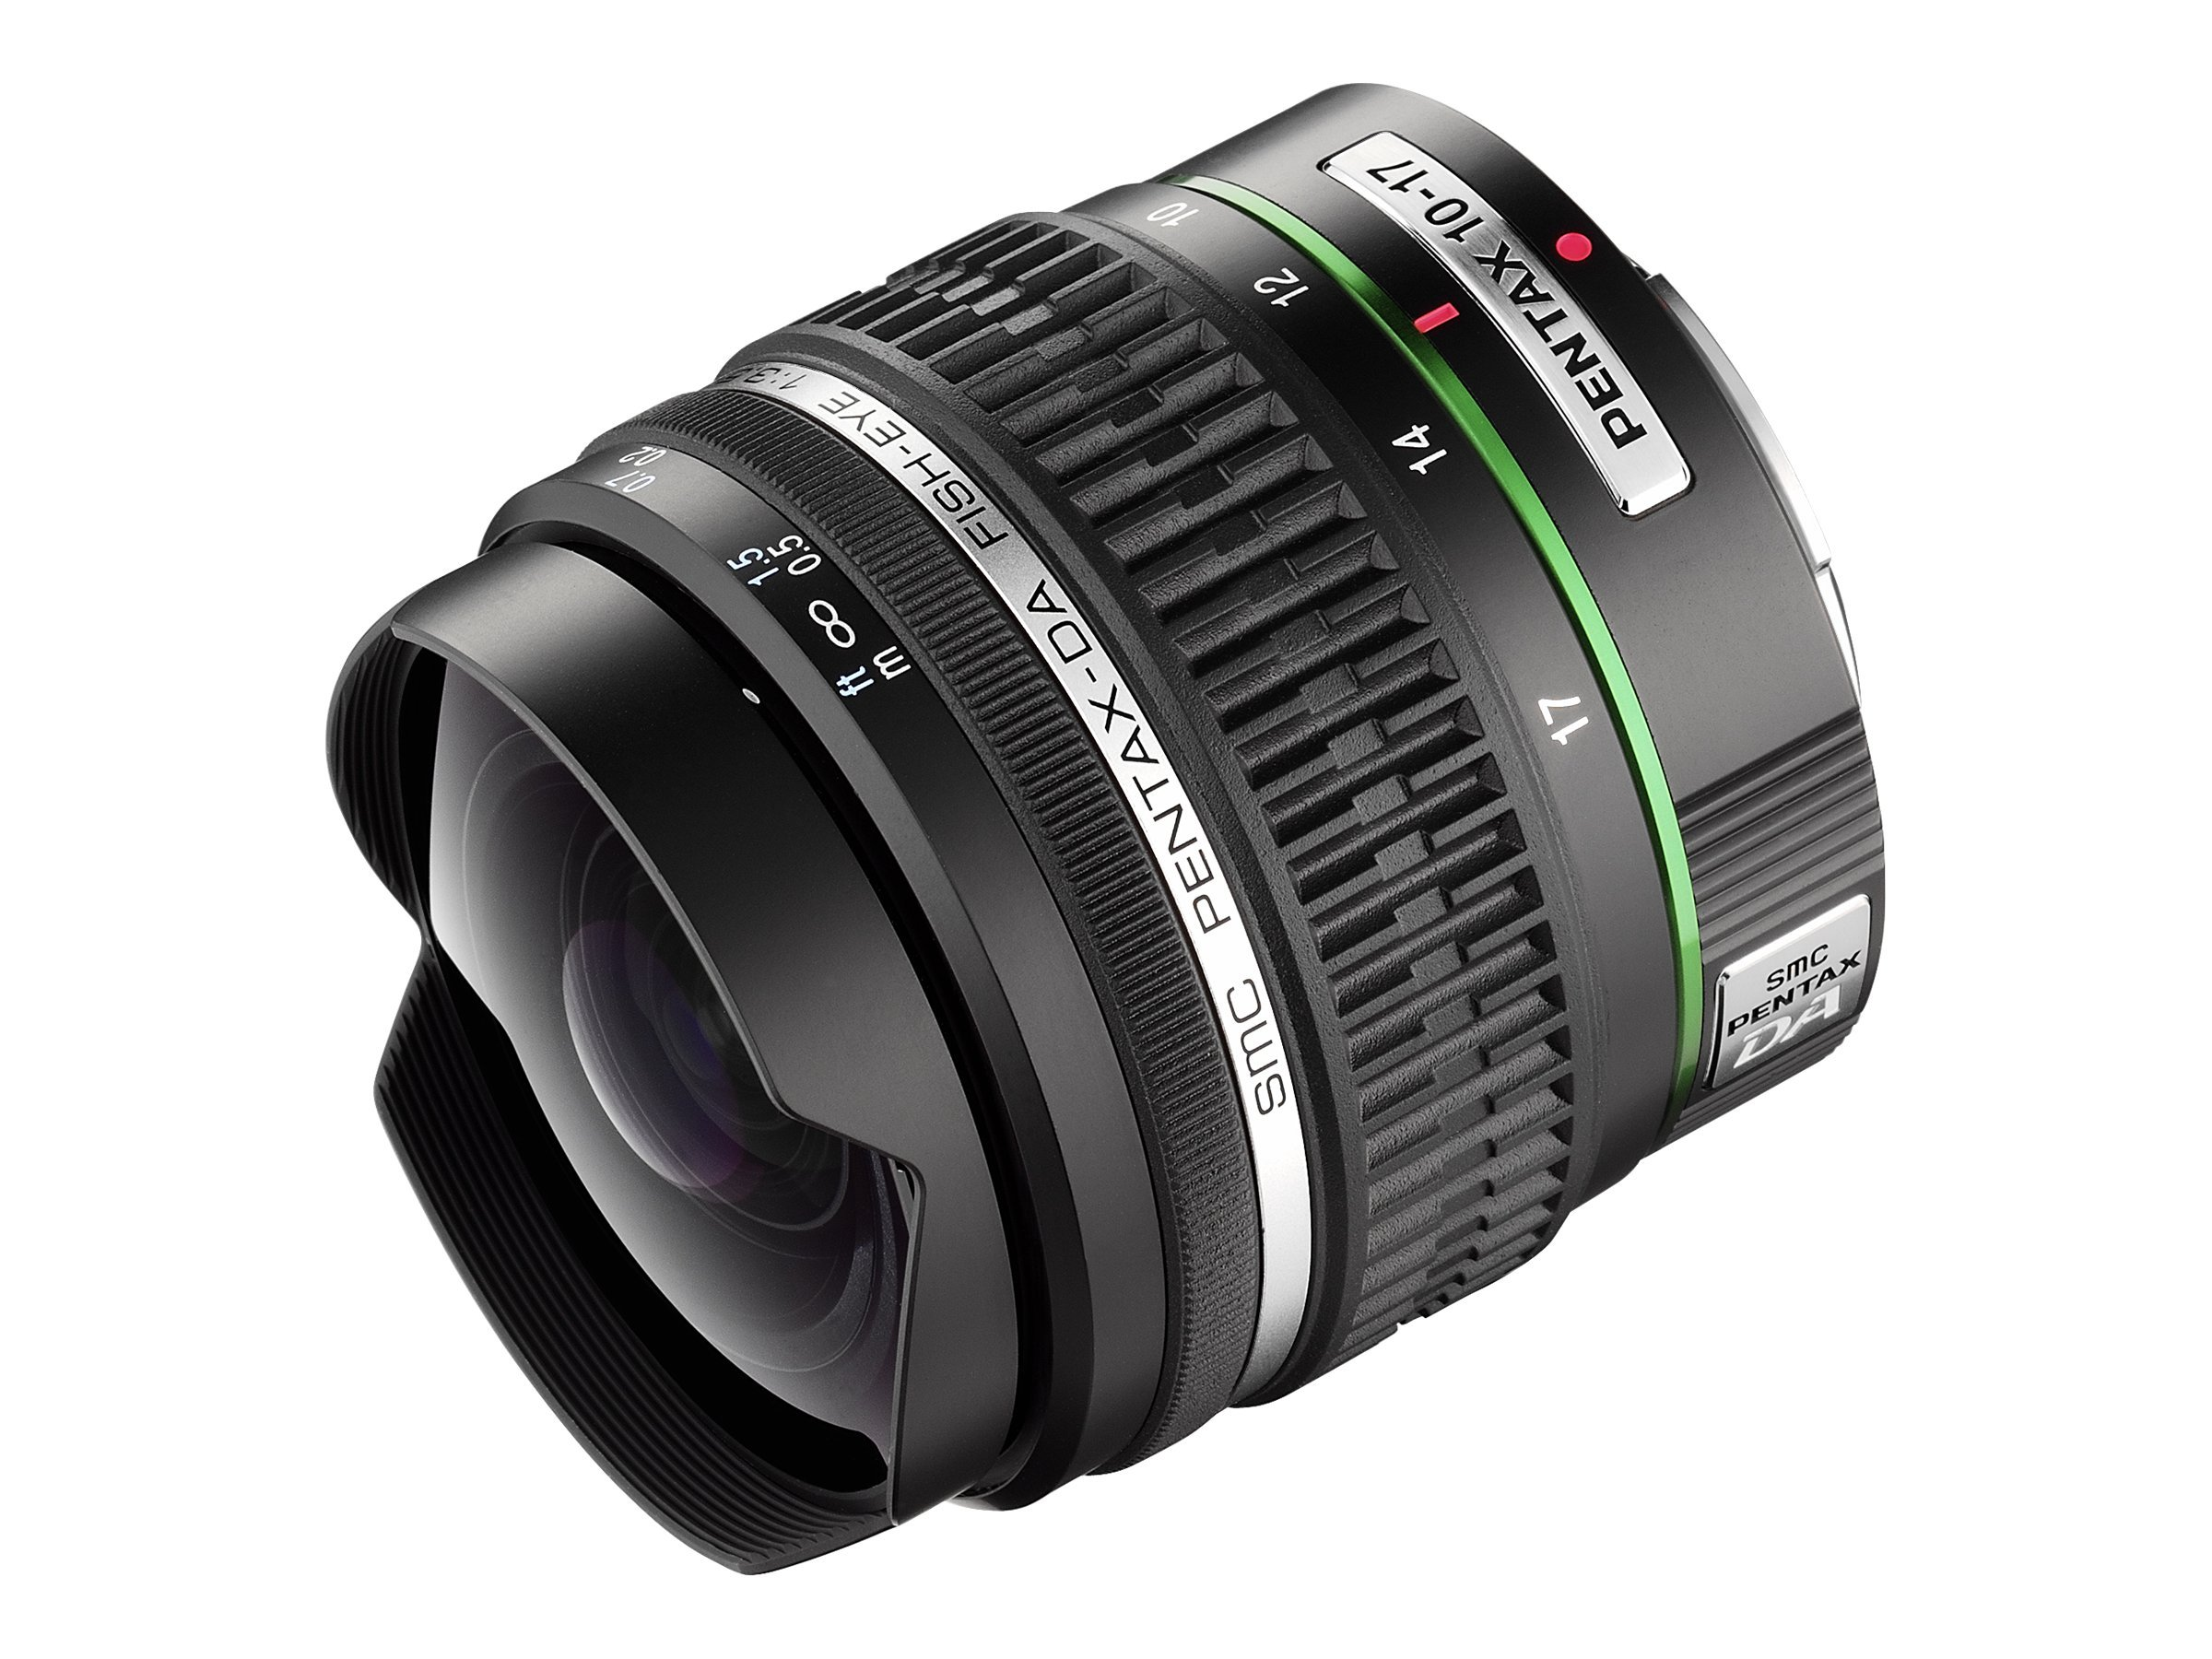 Pentax Zoom Fisheye to Super Wide-Angle SMCP-DA 10-17mm f 3.5-4.5 ED (IF) Autofocus Lens for Digital SLR, 21580, 9639636, Camera & Camcorder Lenses & Filters